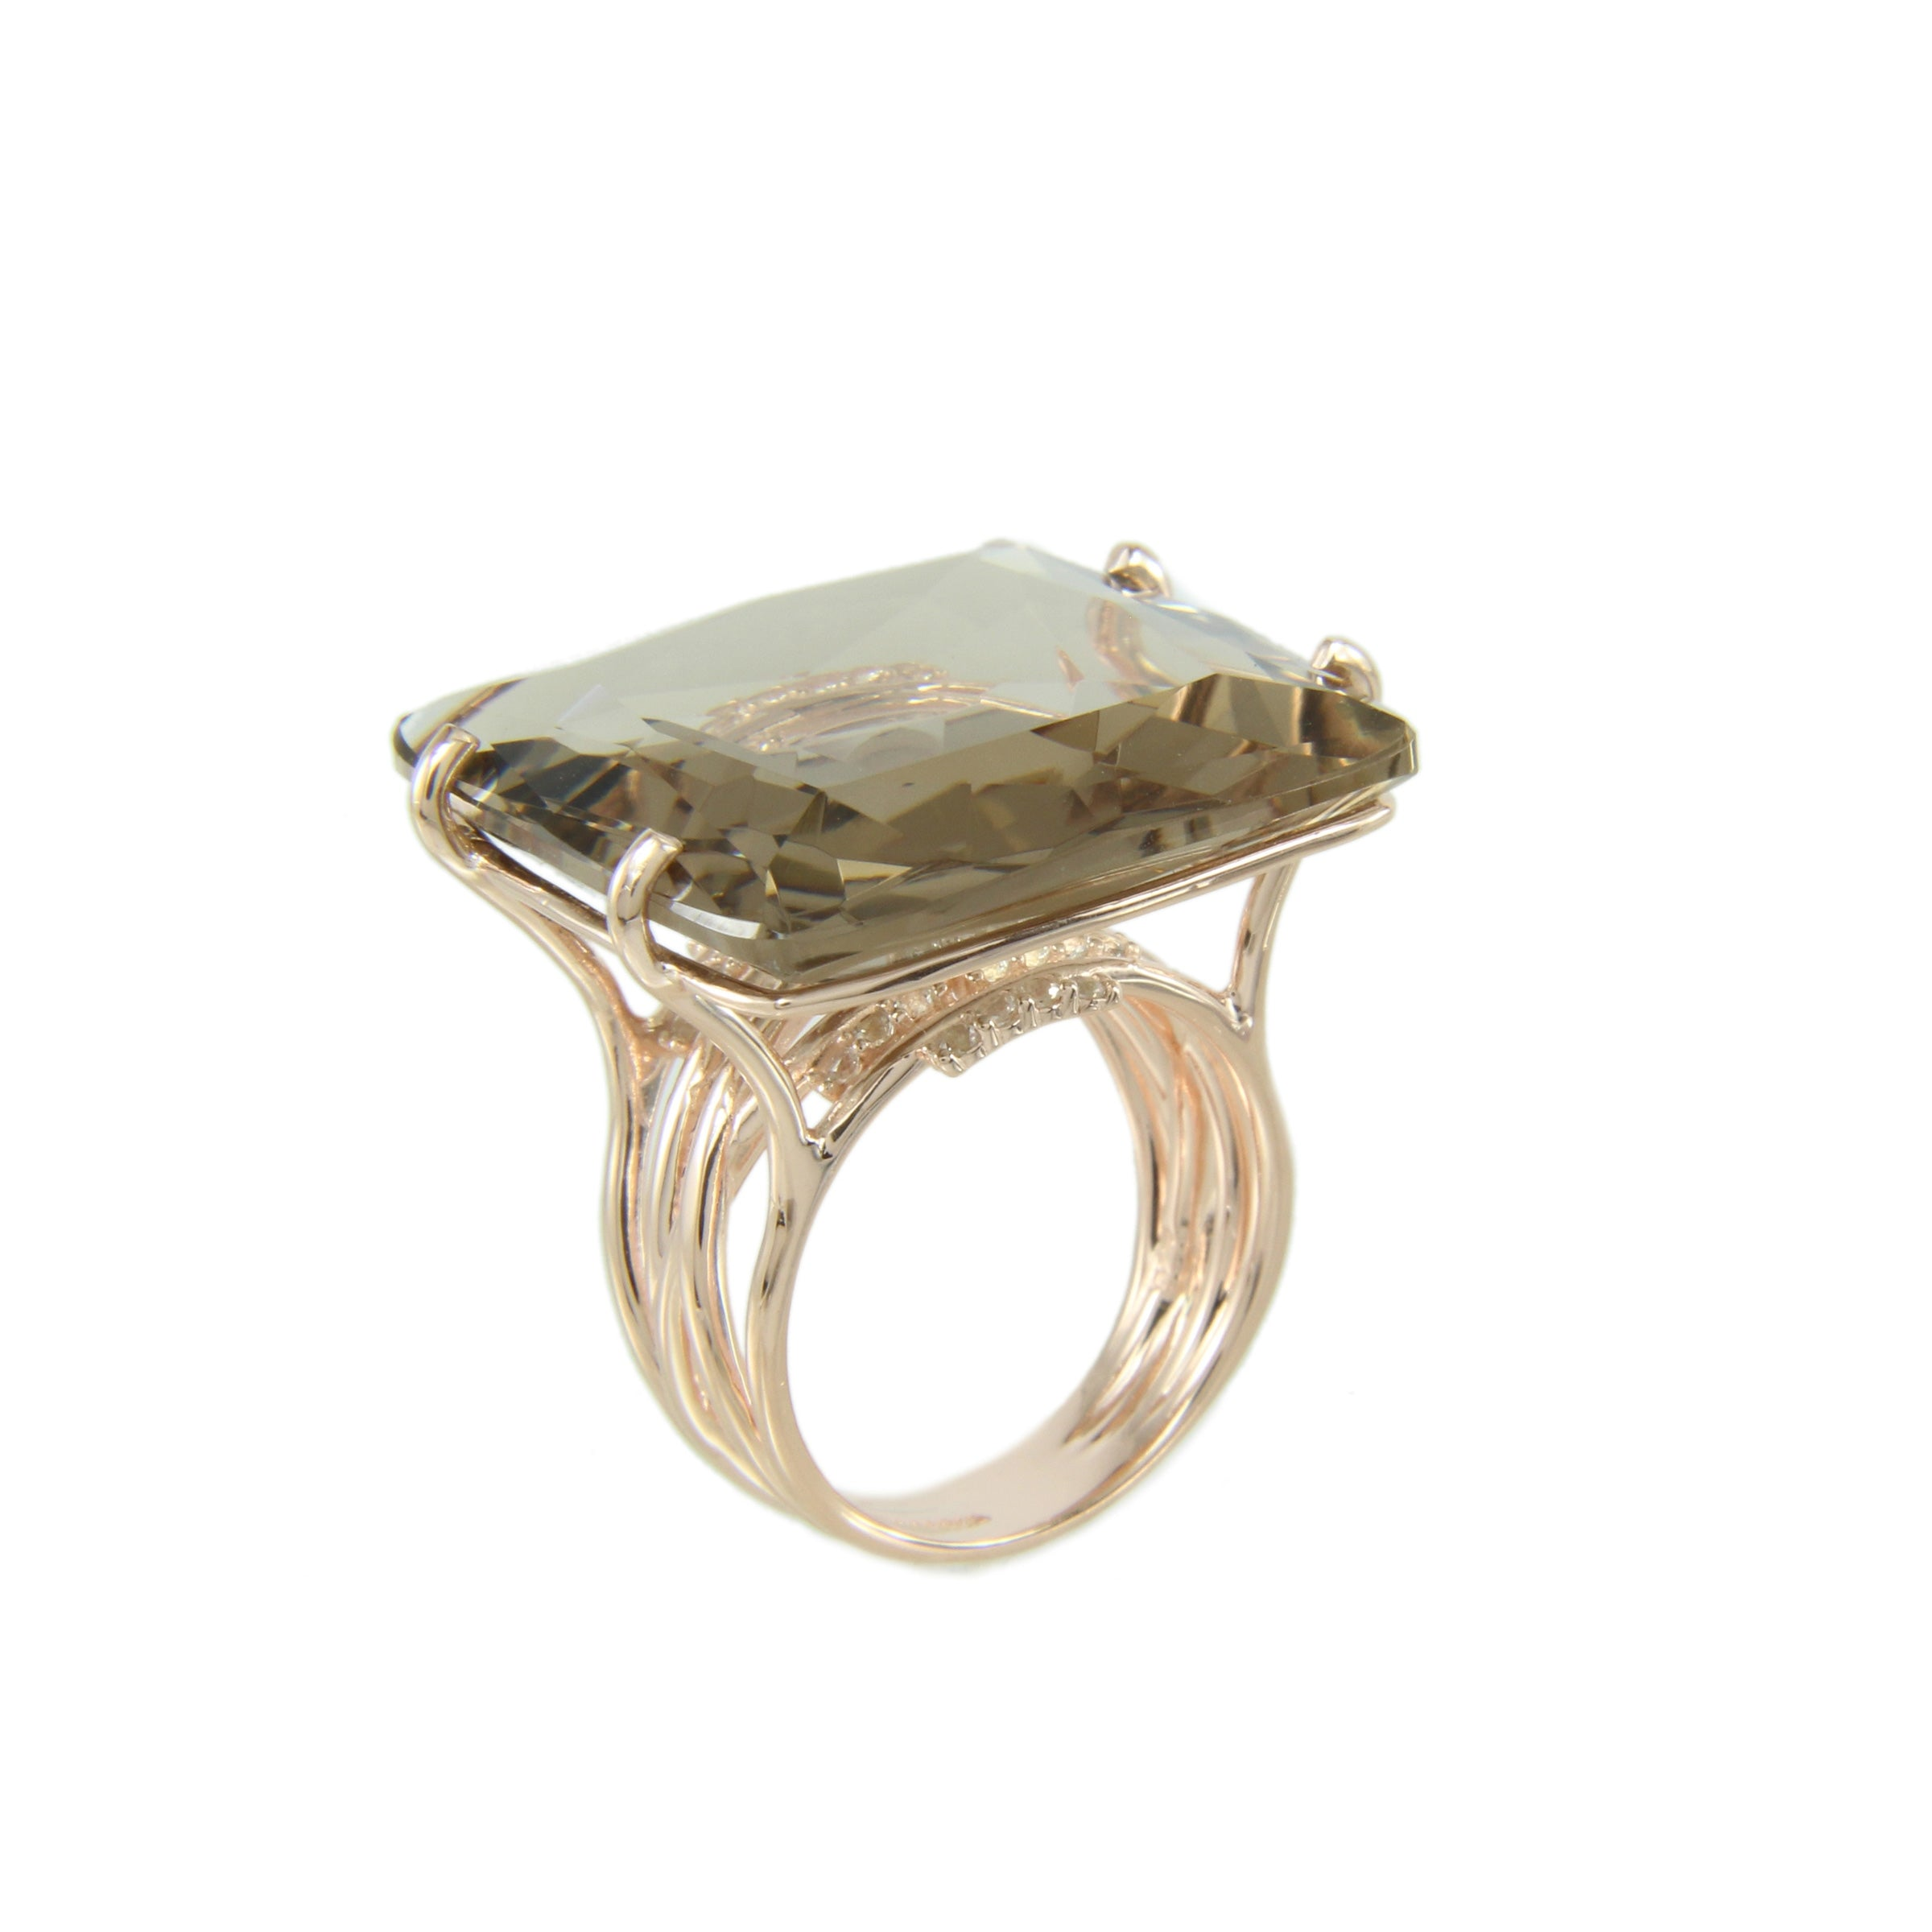 Smoky Quartz and White Topaz Ring, Sterling Silver and Vermeil